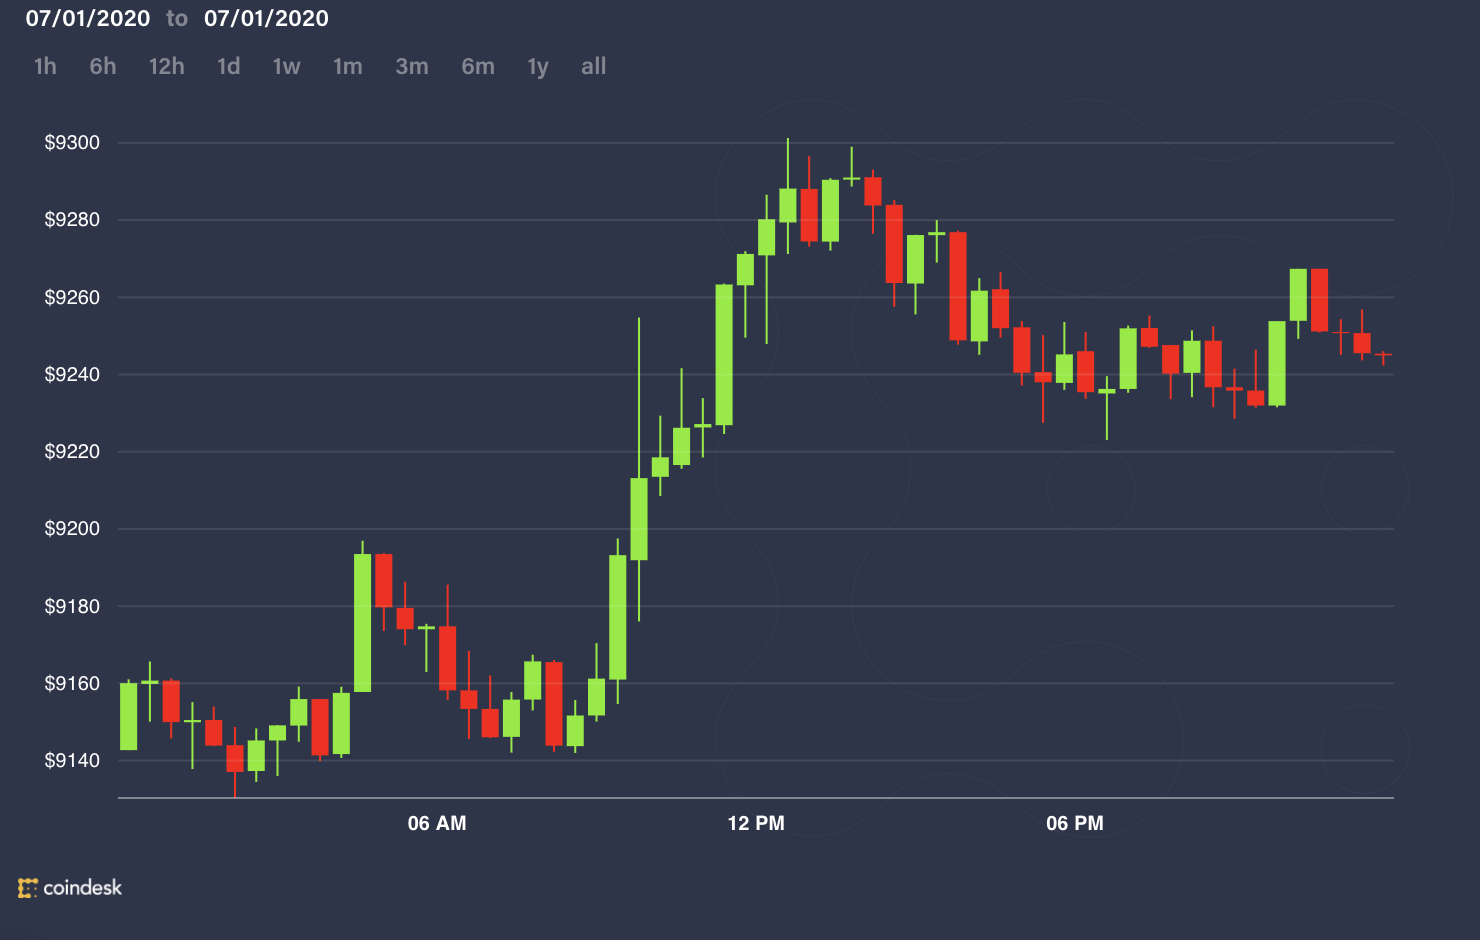 bitcoin trading volume is greater than total supply iml scanner for binary options